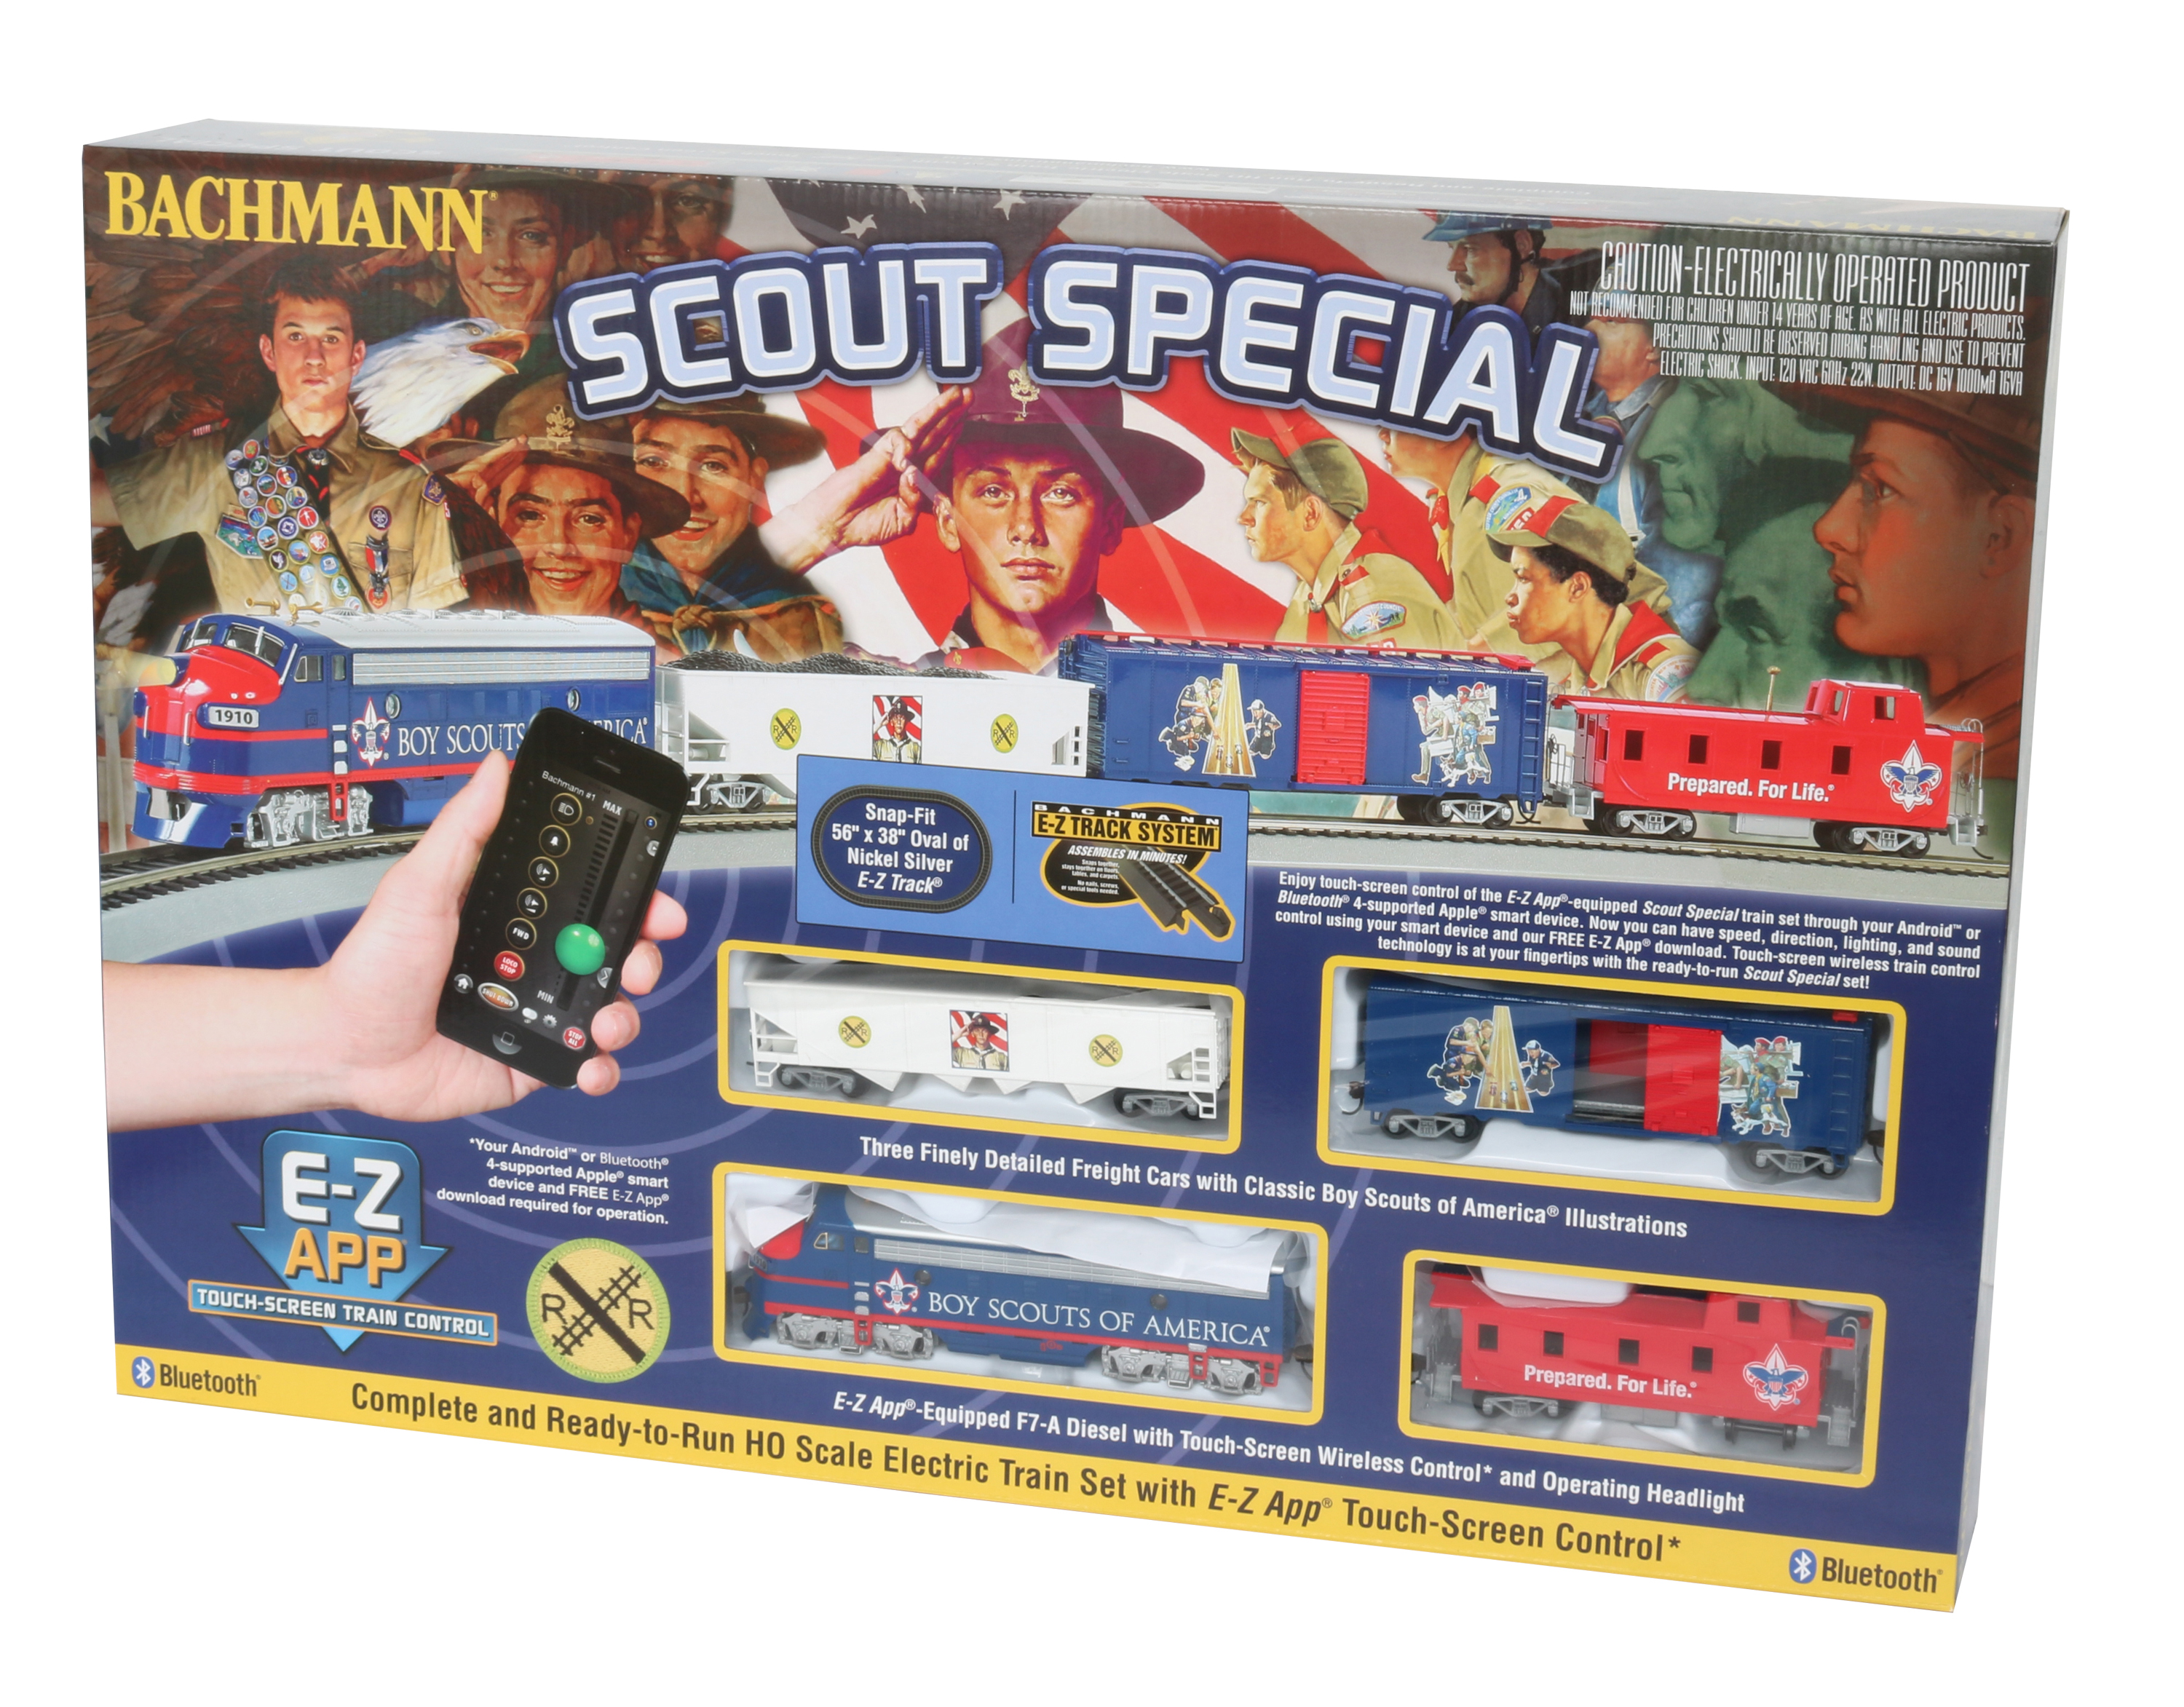 Bachmann Trains SCOUT SPECIAL BOY SCOUTS OF AMERICA E-Z App Smart Phone Controled Electric... by Bachmann Trains